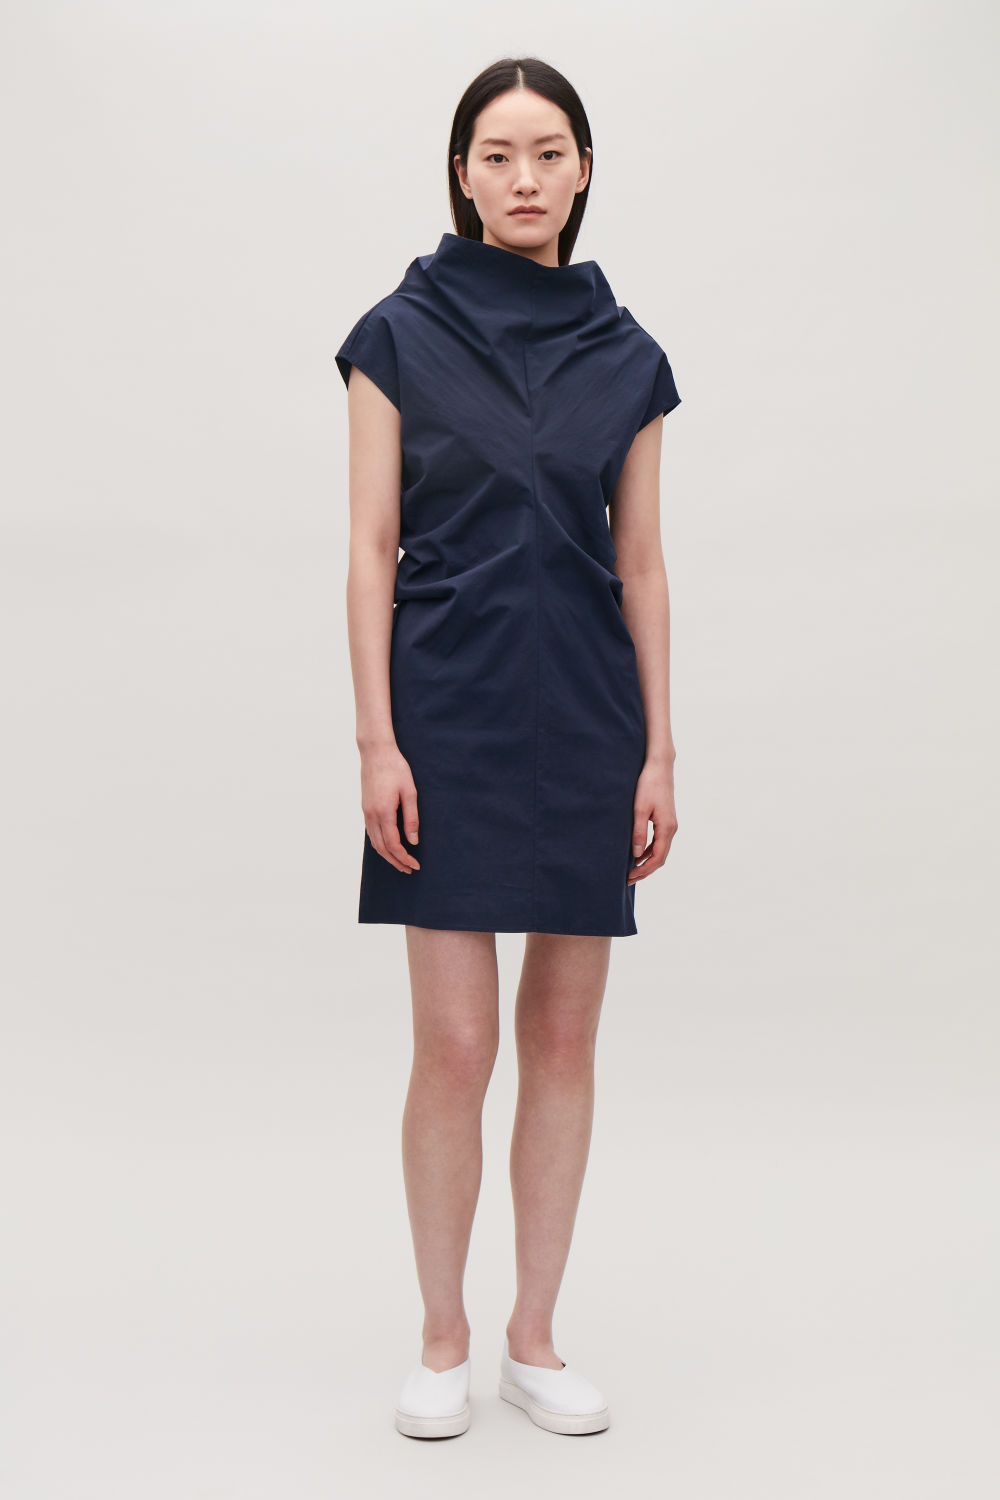 COS DRAPED-NECK SHORT DRESS,Navy